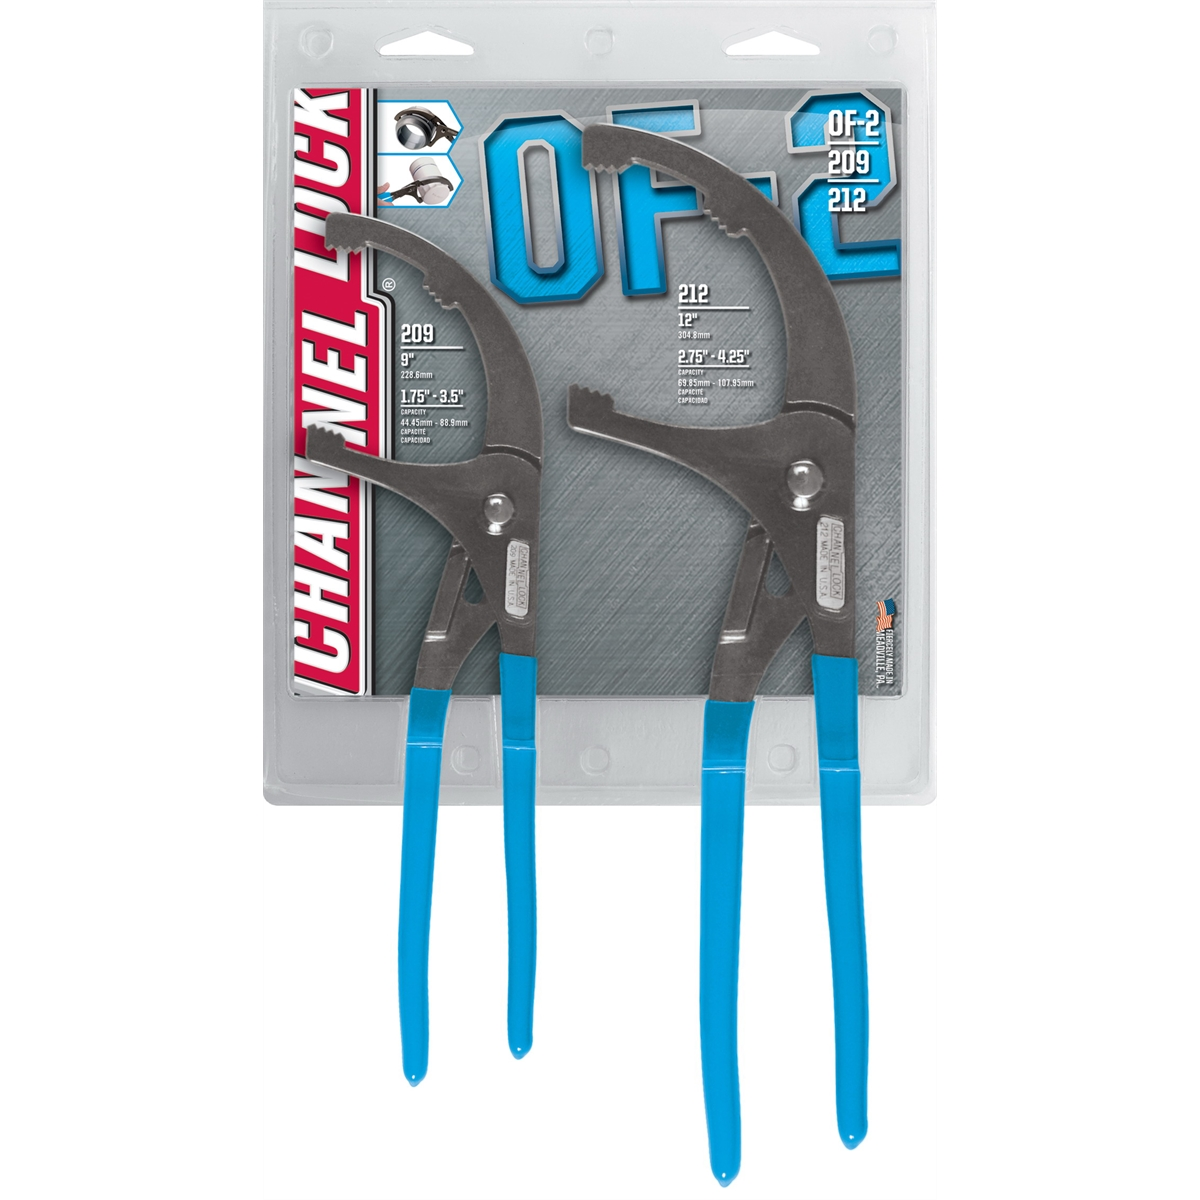 2Pc Oil Filter Plier Set 9in and 12in Pliers